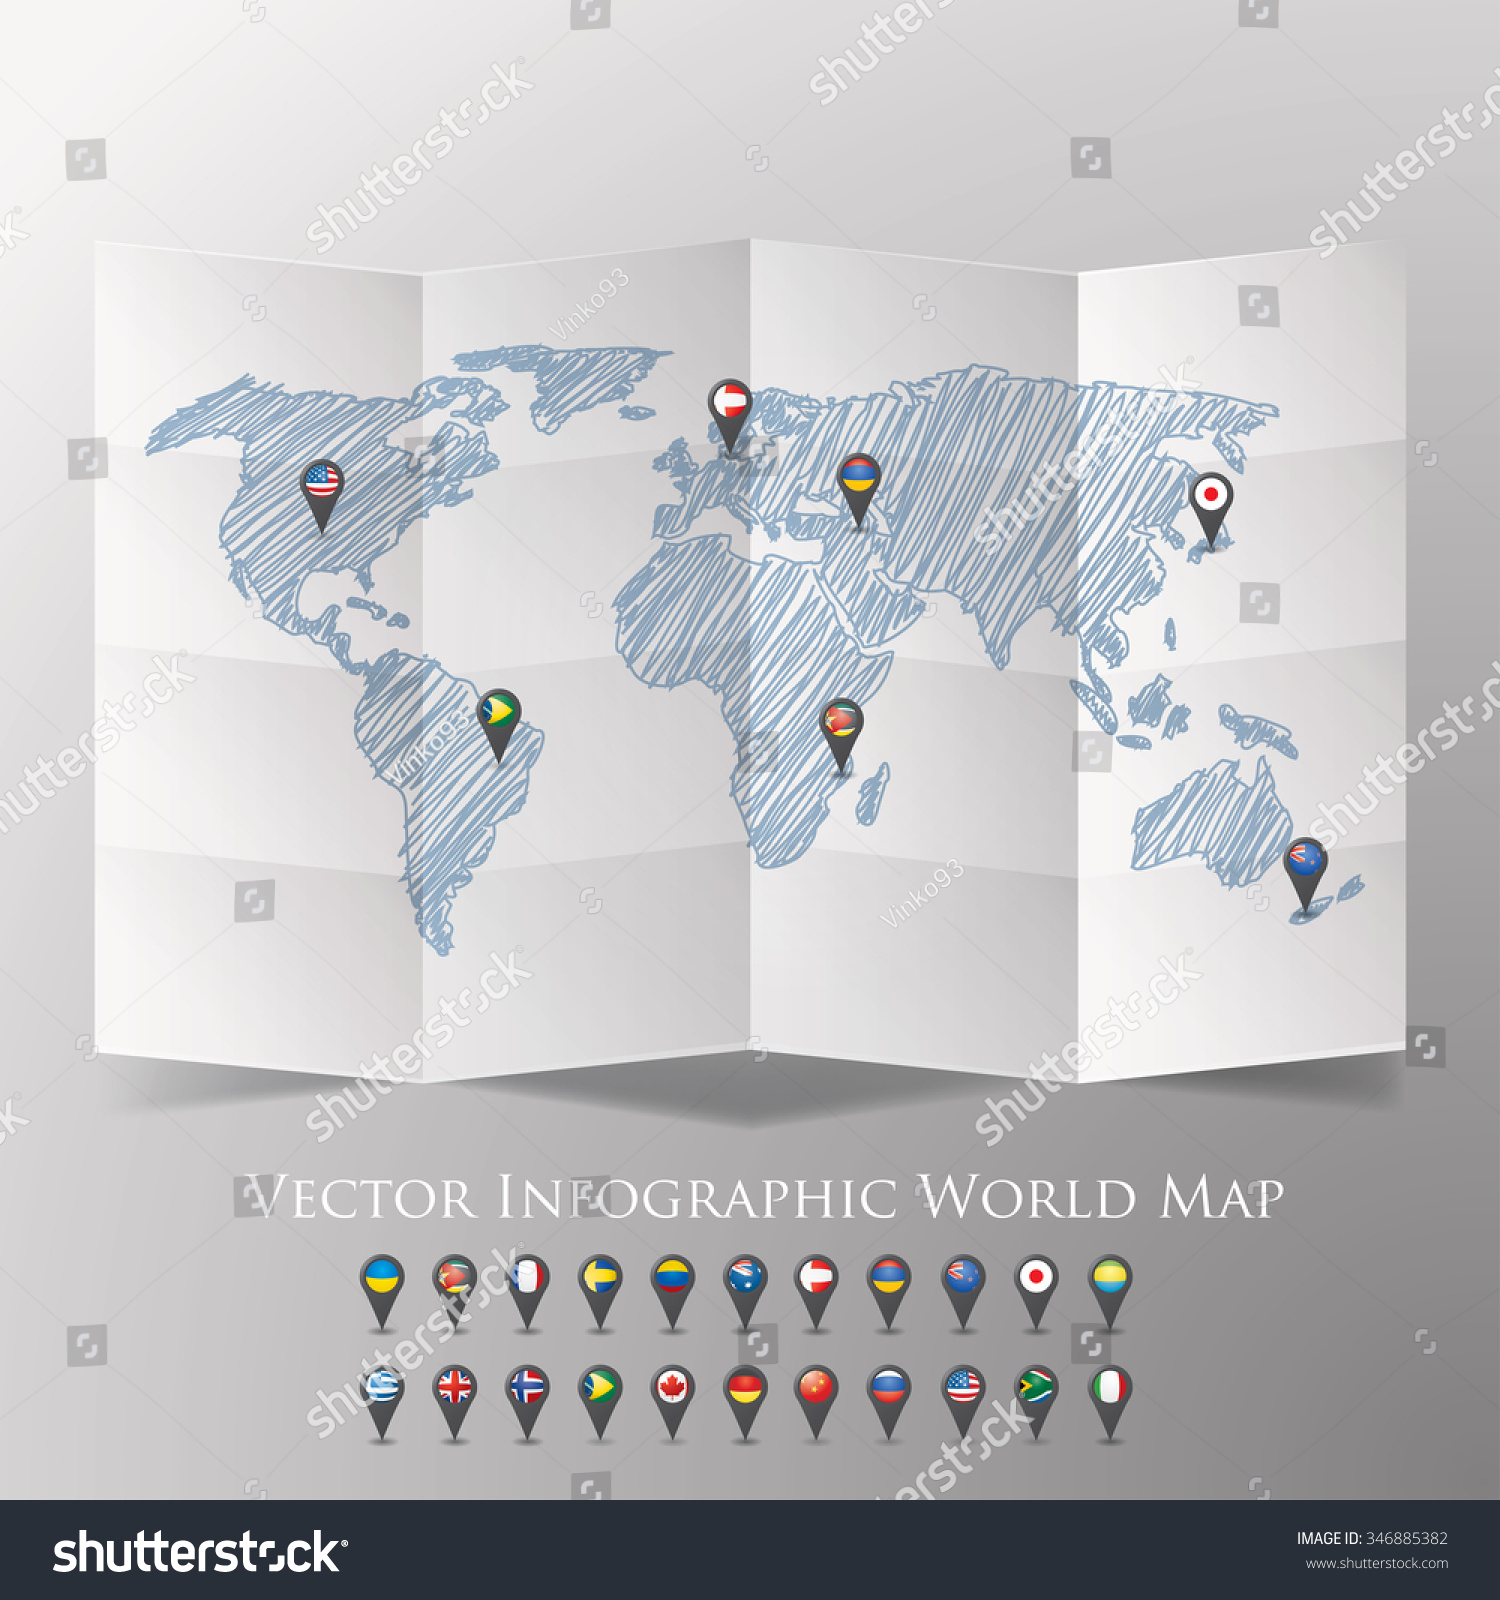 World map national flags vector illustration stock vector world map with national flags vector illustration gumiabroncs Images